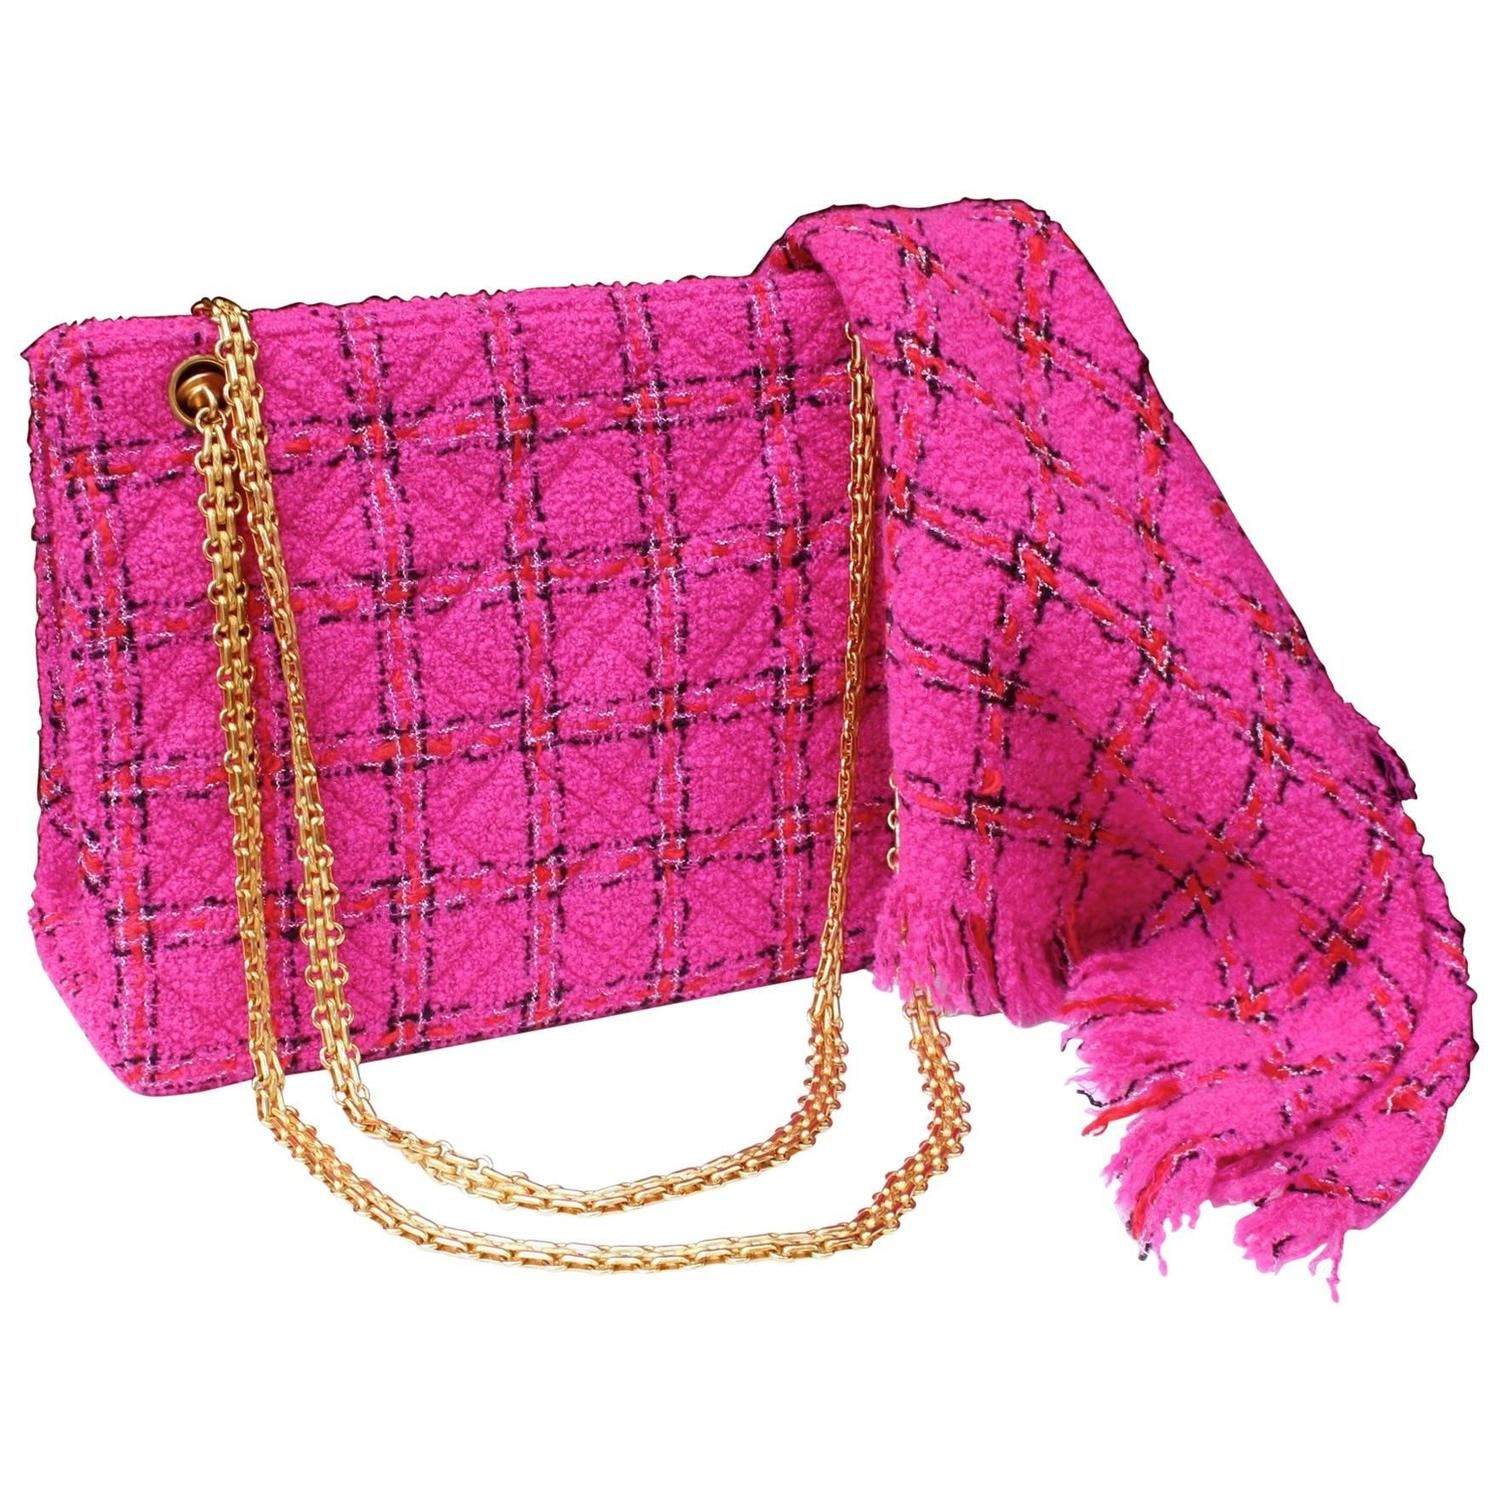 76448e66202c Chanel Pink Tweed Bag and Matching Scarf, 1990s | My 1stdibs ...